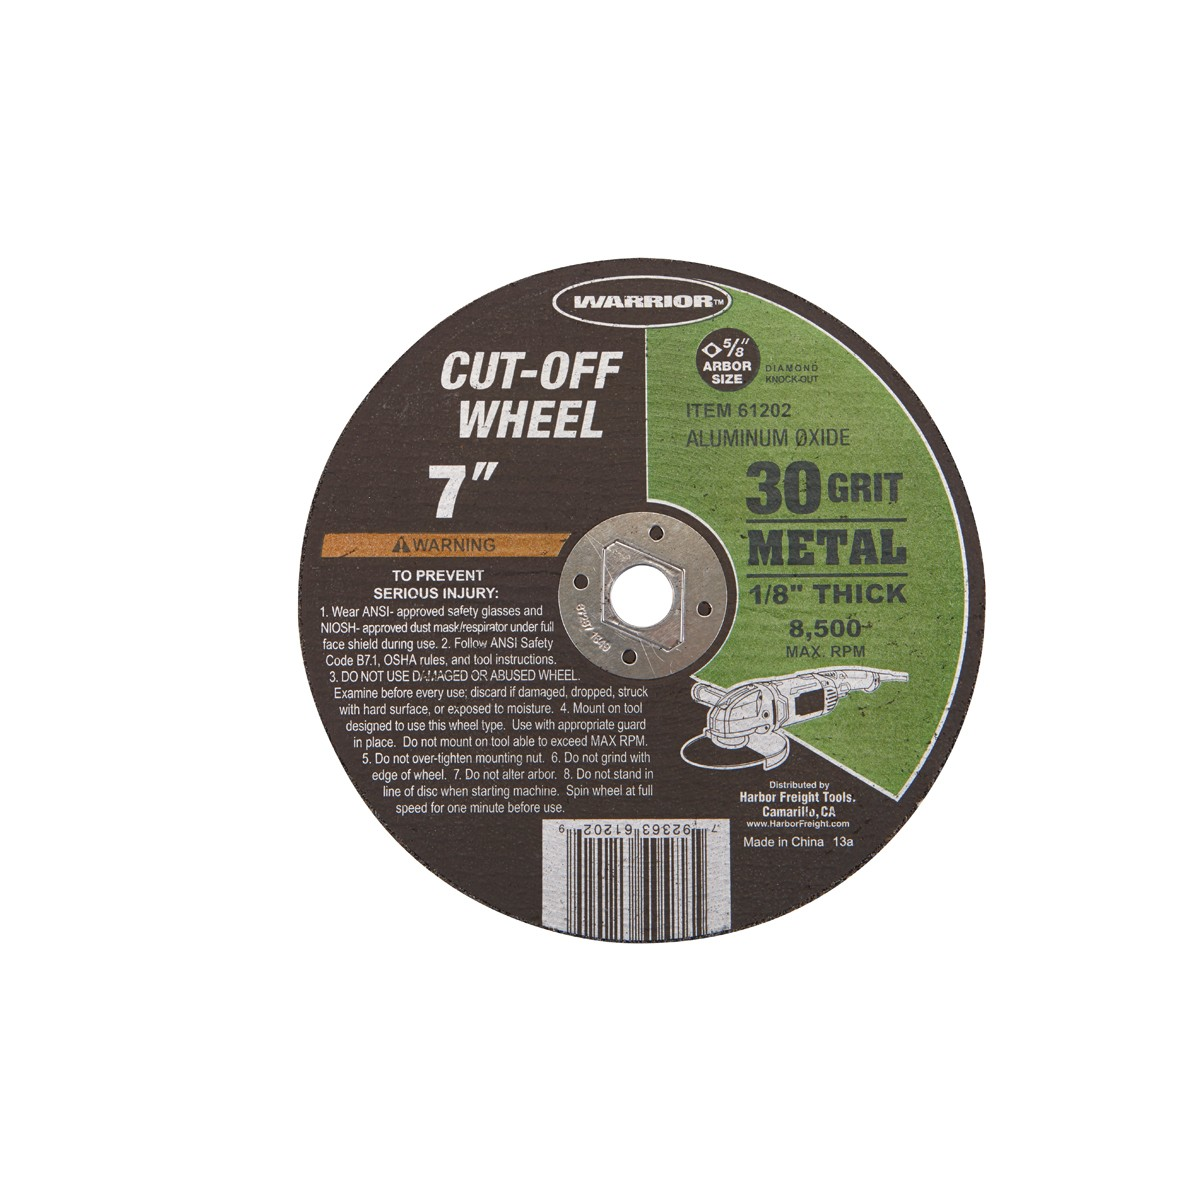 7 in. 30 Grit Metal Cut-off Wheel